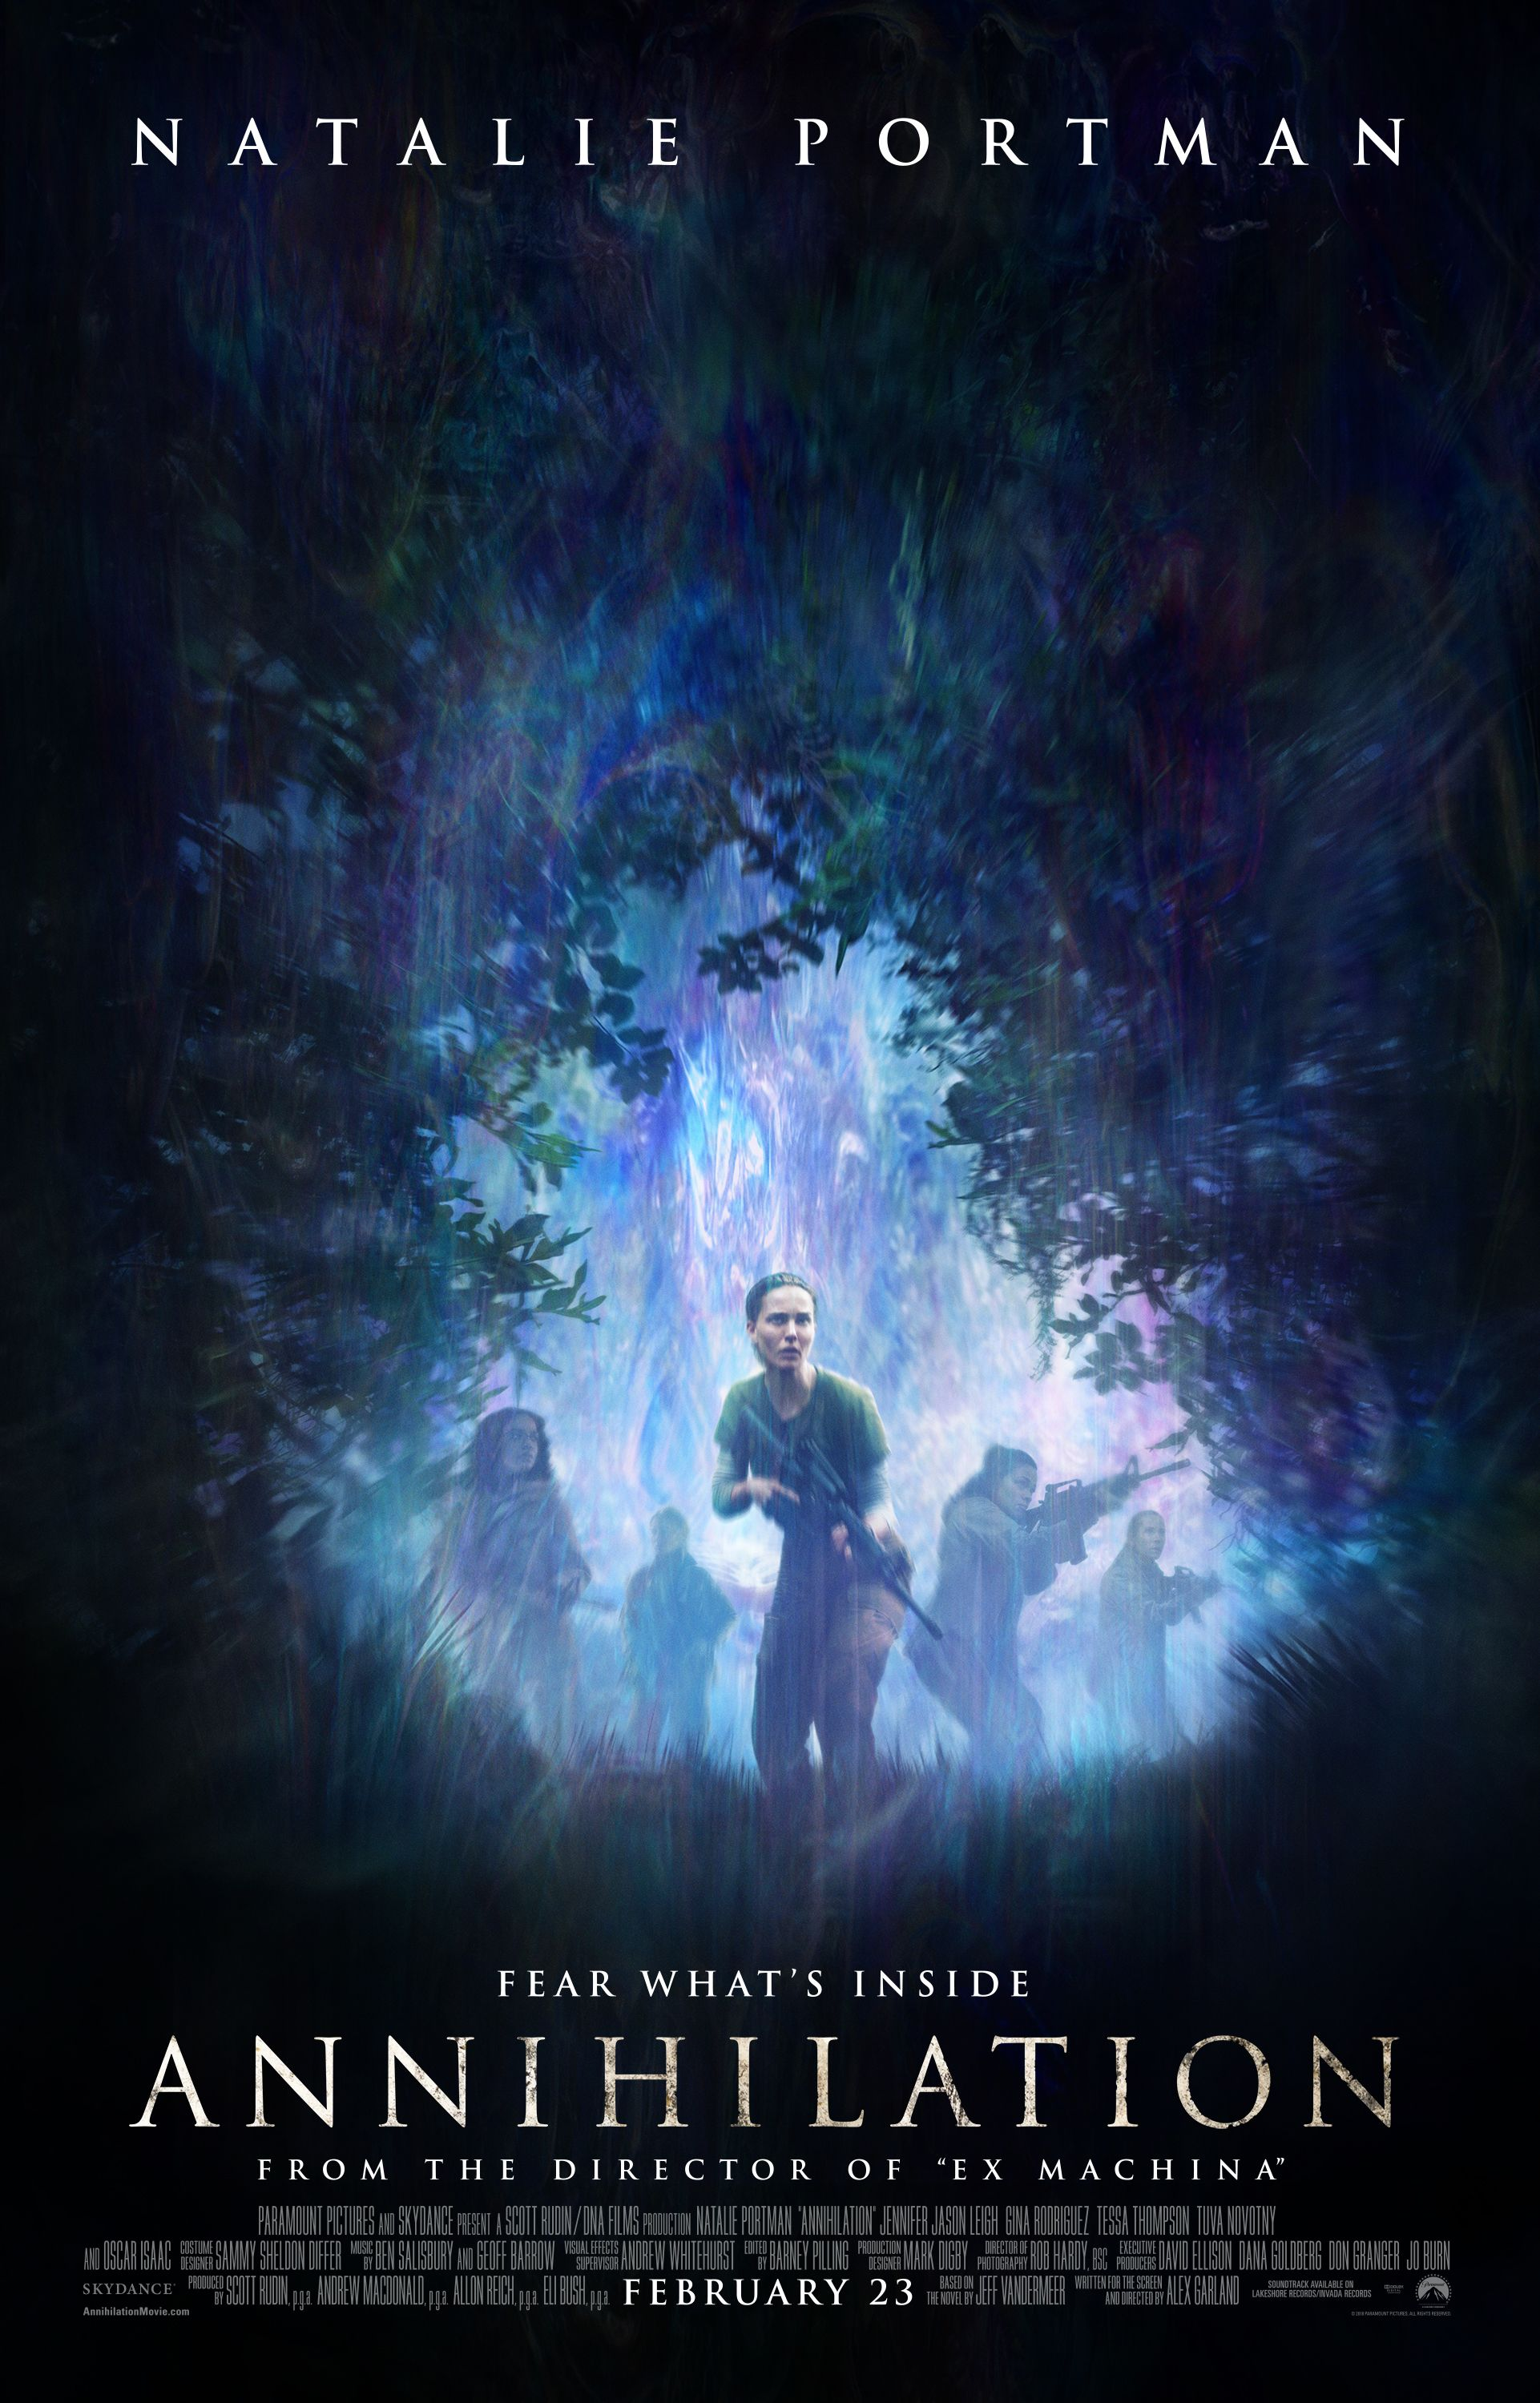 Annihilation Movie Explained: Unpacking the Trippy Sci-Fi Film